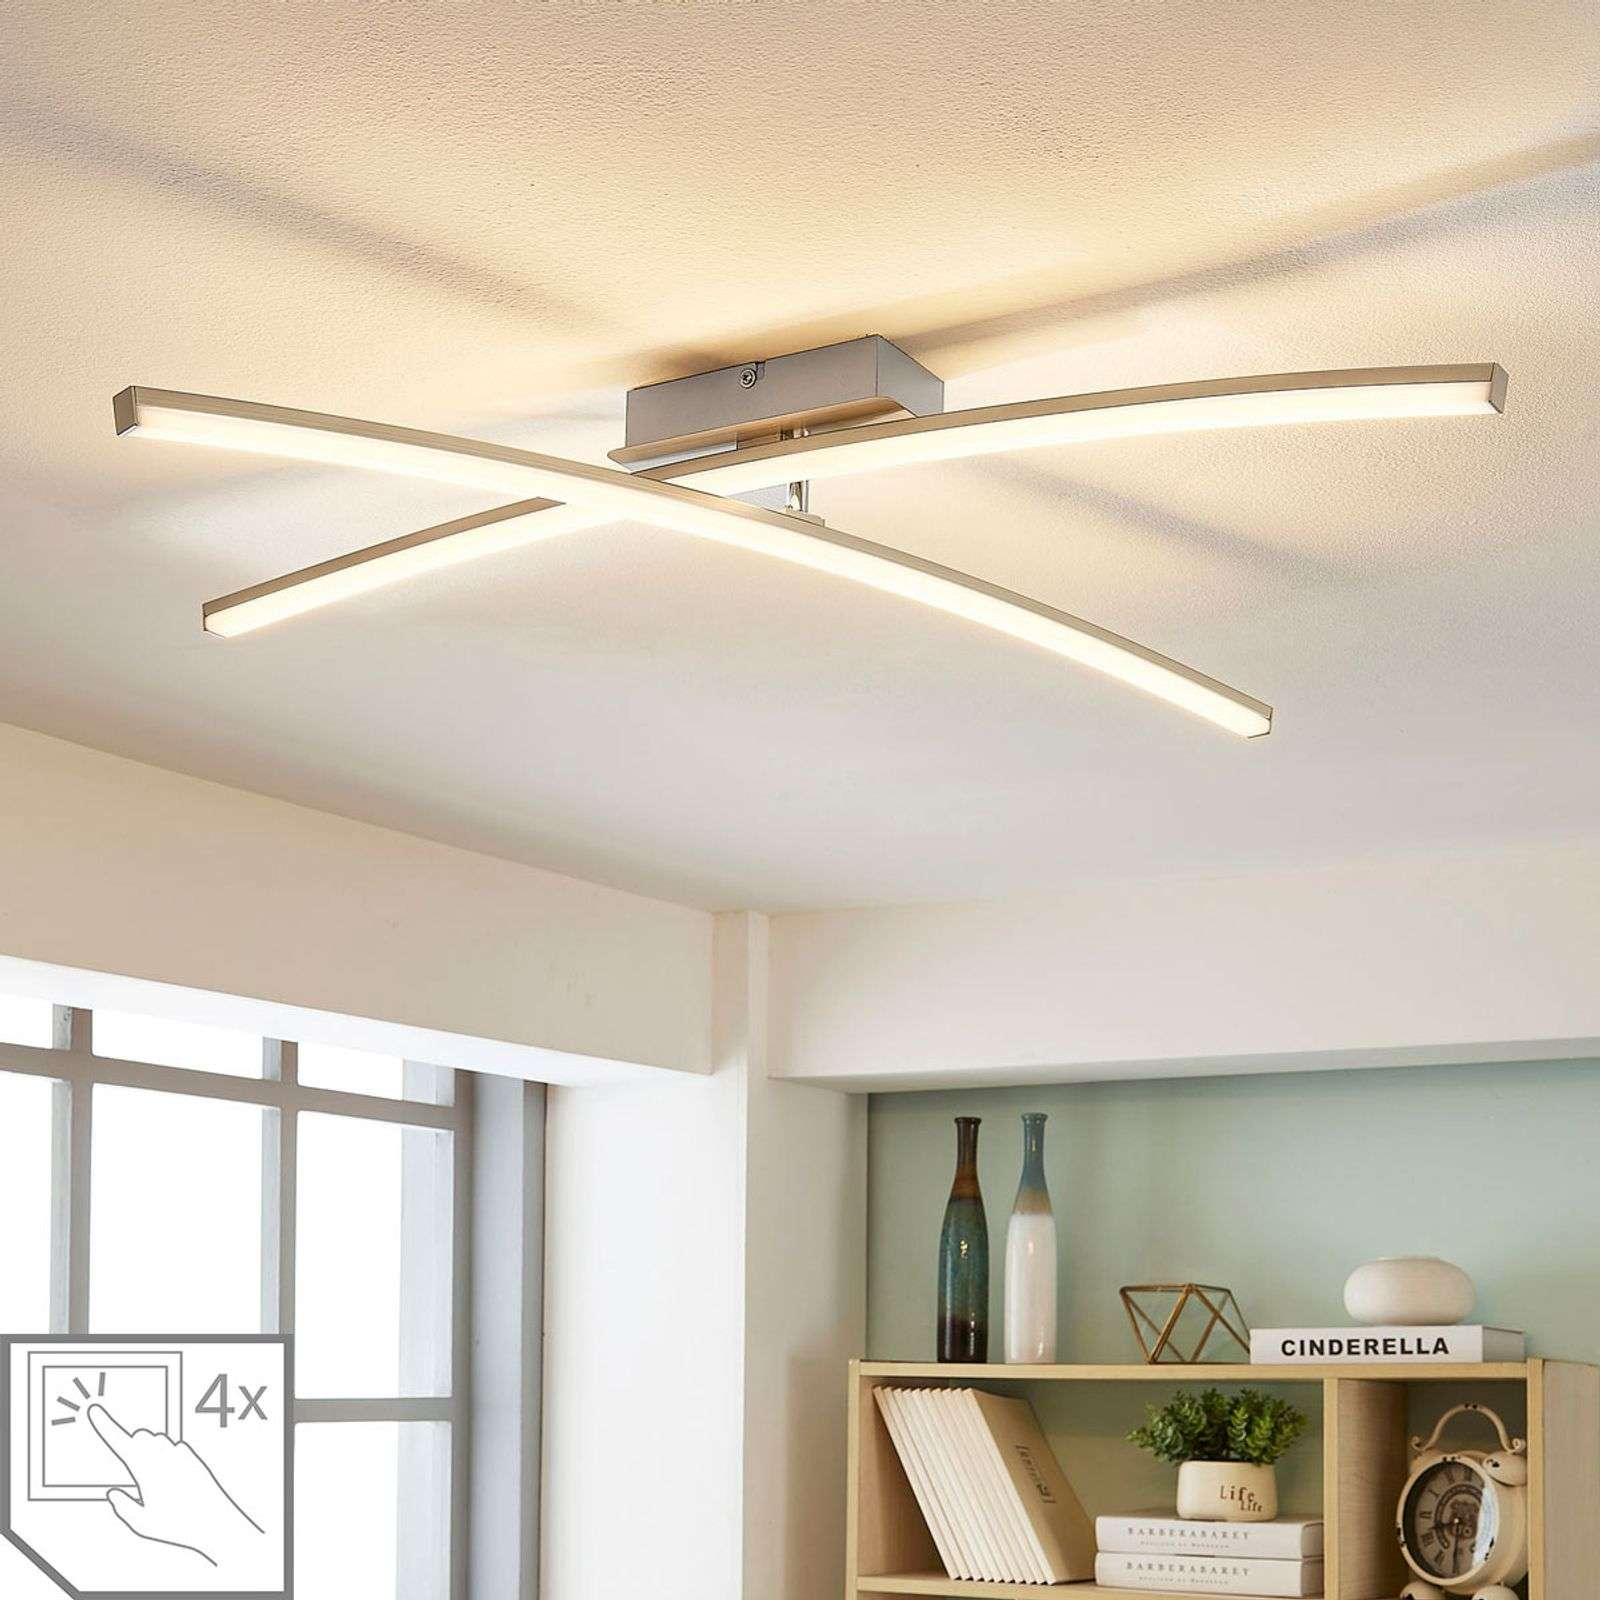 Laurenzia - Plafonnier LED chromé, dimmable